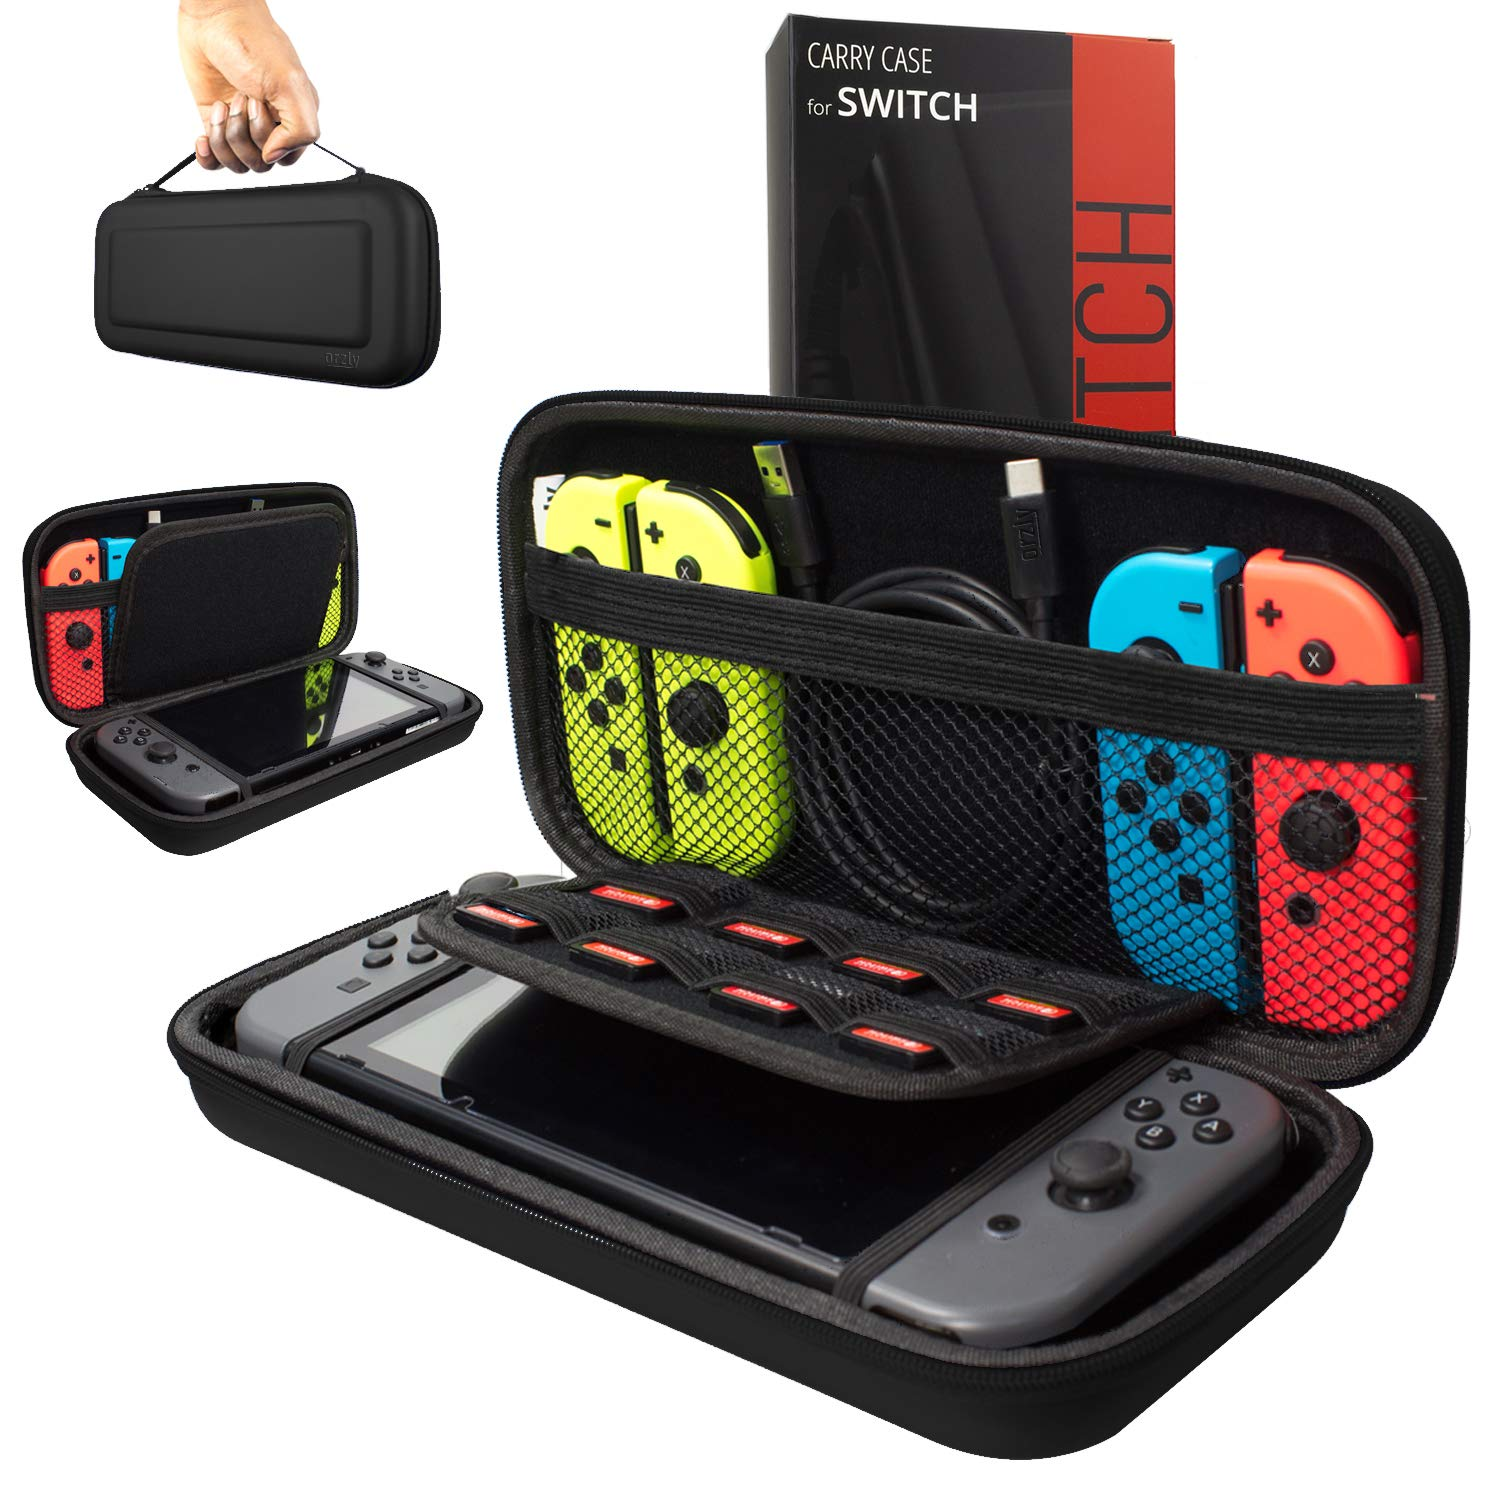 Orzly Carry Case Compatible with Nintendo Switch, Black (Case Only - Video Games & Console are NOT Included) product image